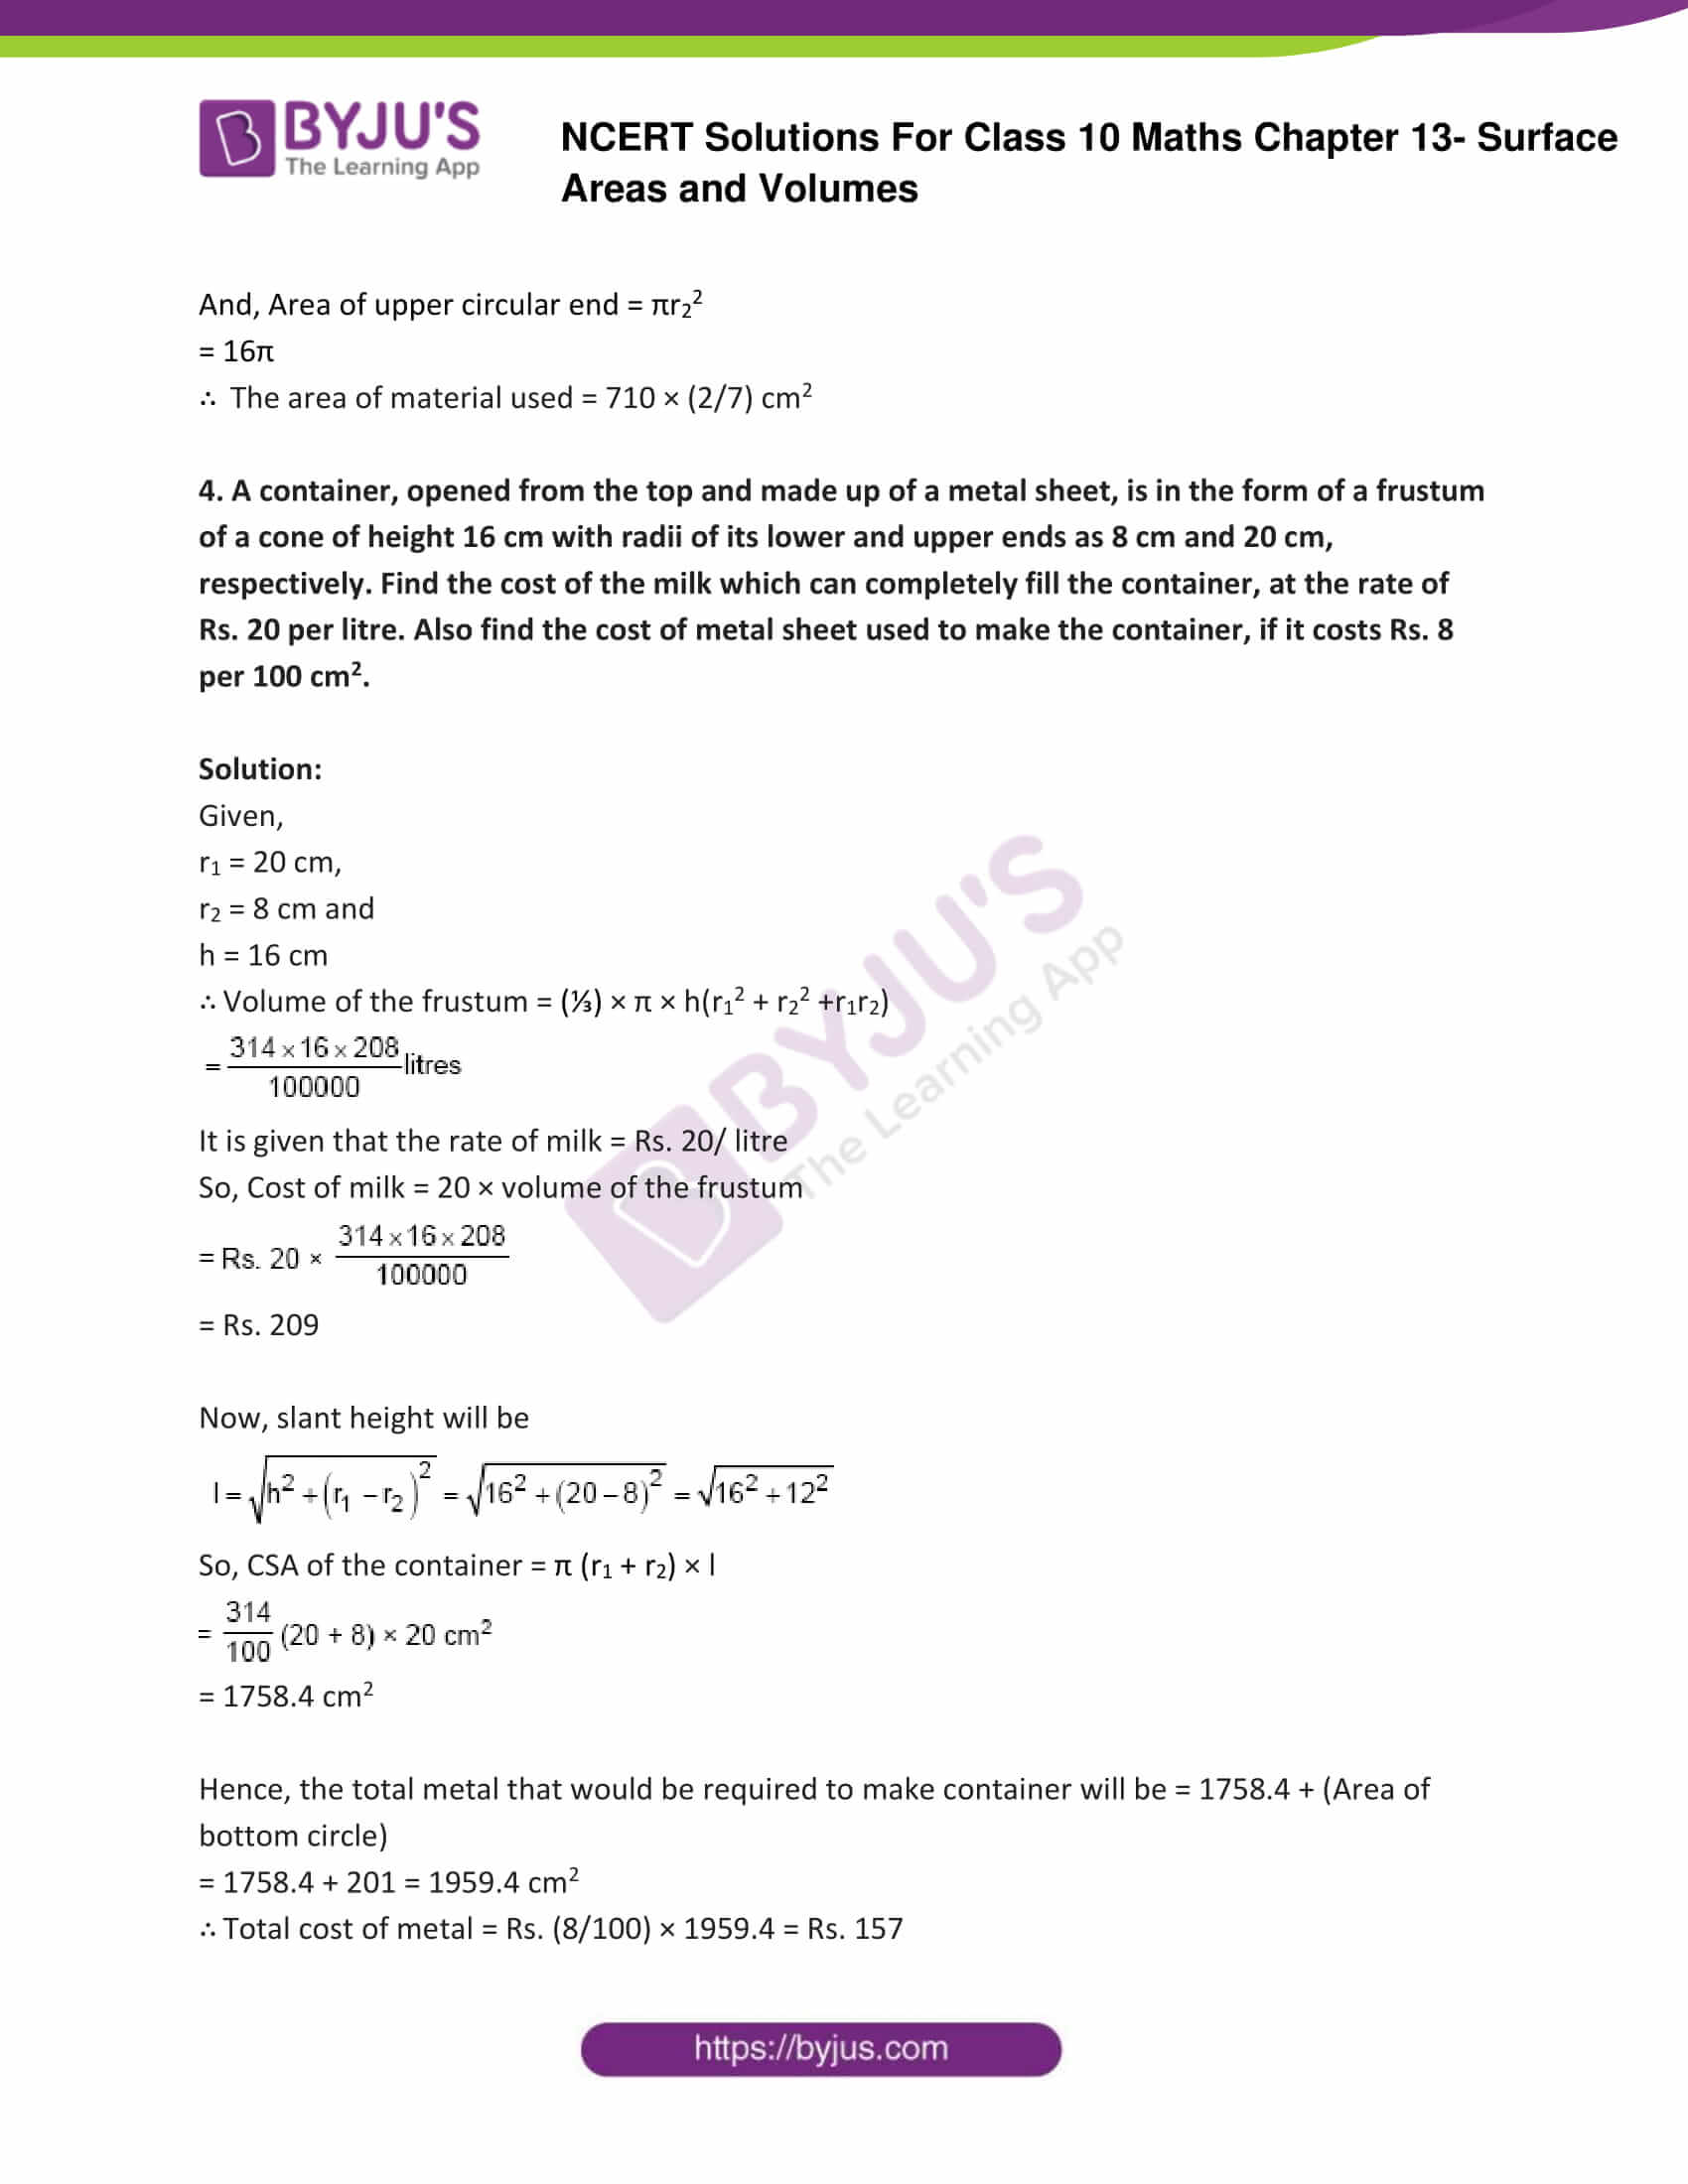 NCERT Solutions Class 10 Maths Chapter 13 Surface Areas and Volumes Part 22